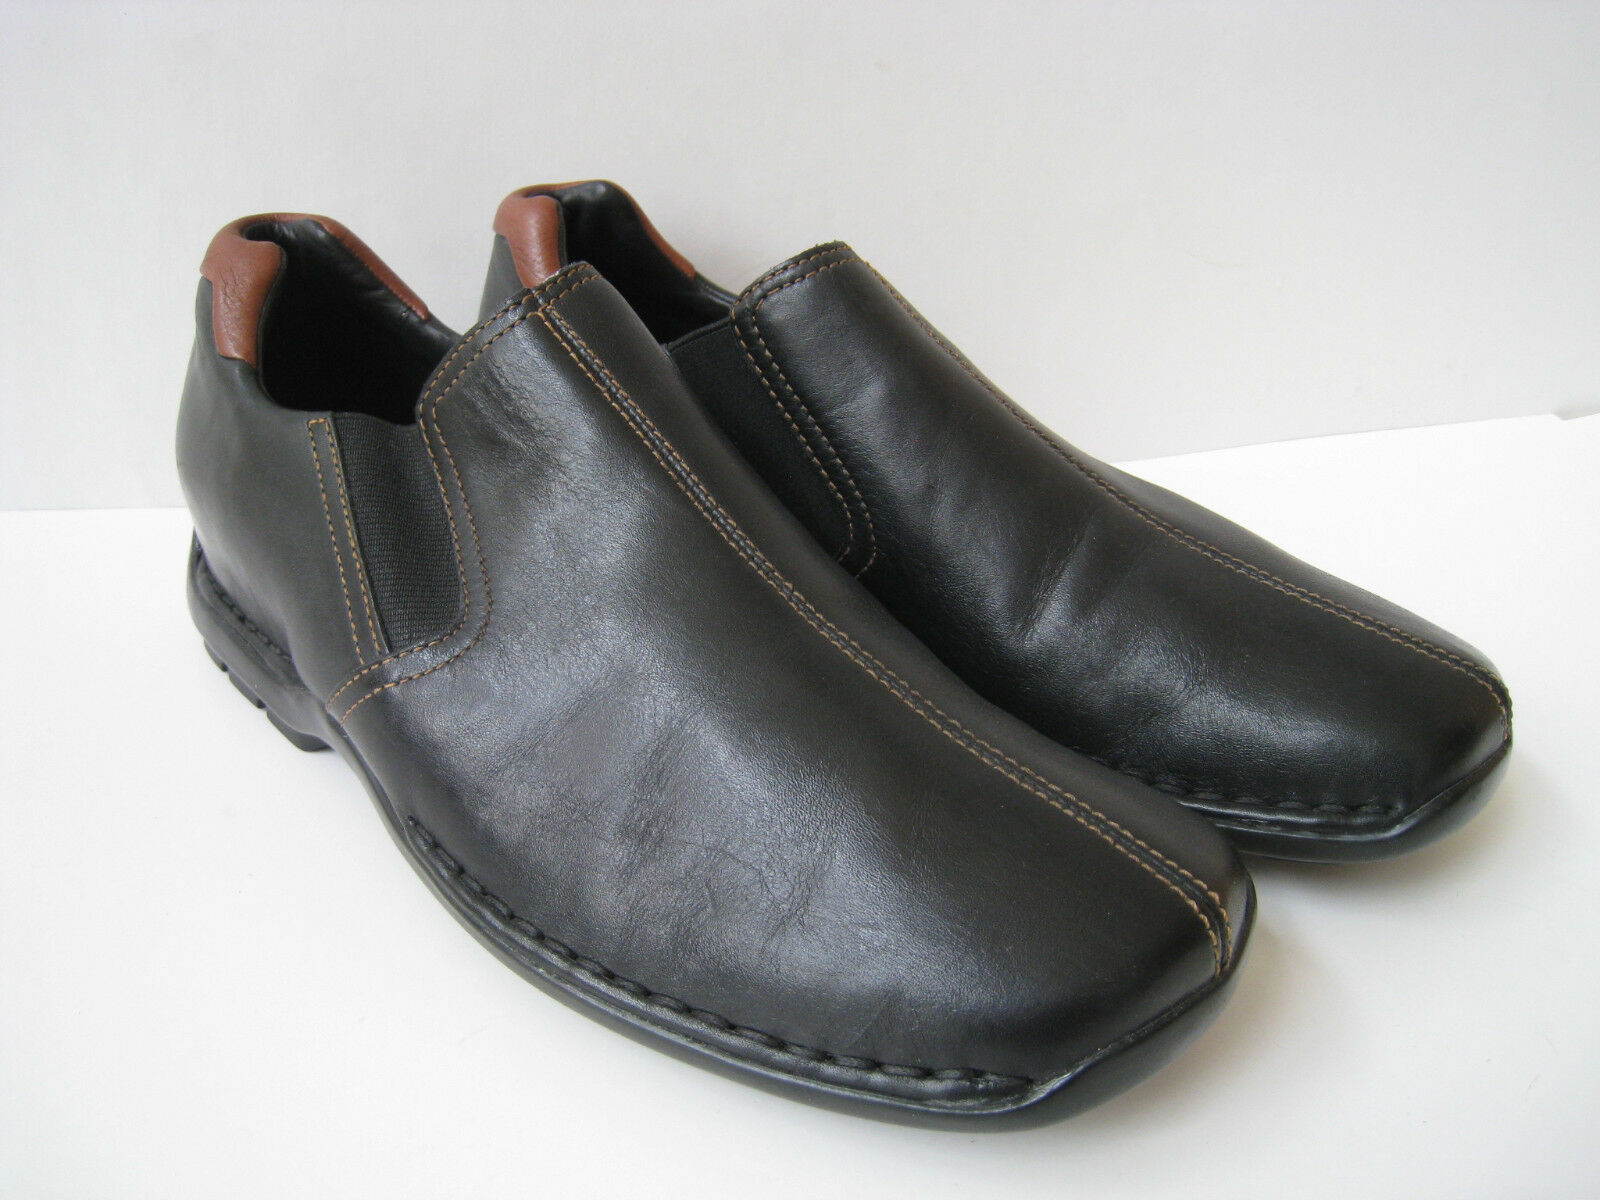 COLE HAAN BLACK LEATHER LOAFER MEN SIZE US 9.5 GREAT